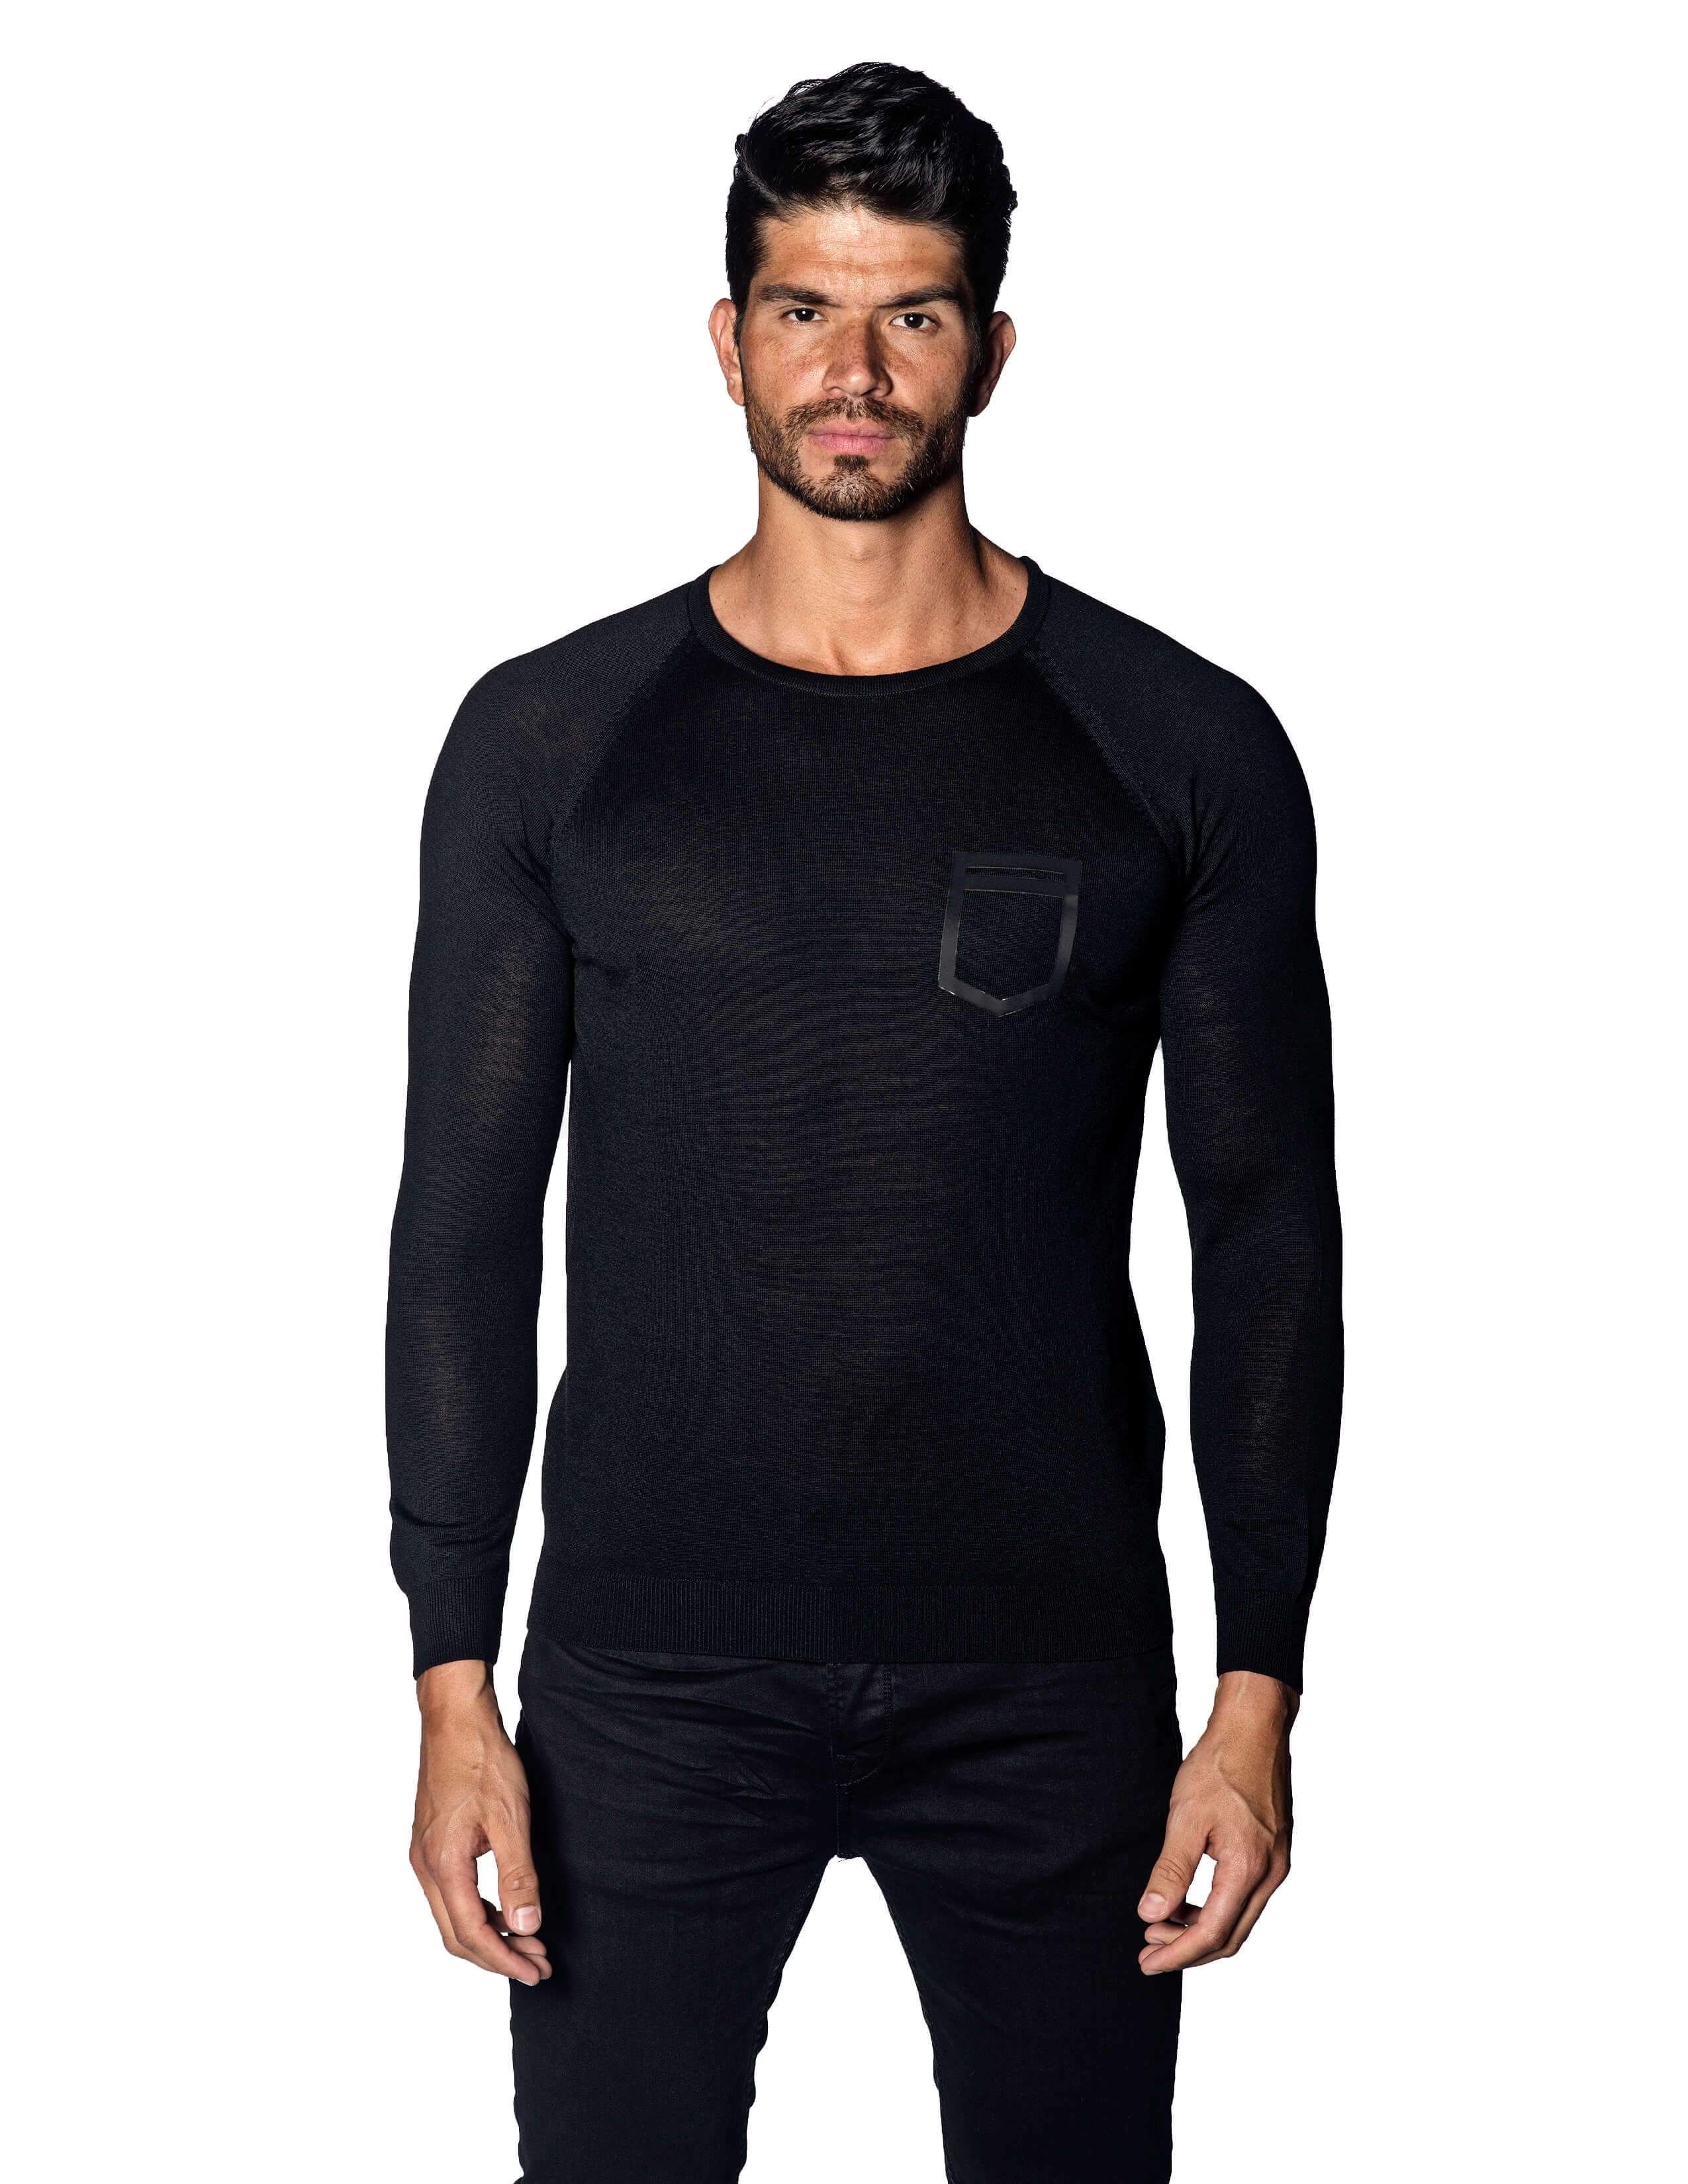 Charcoal Sweater Crew Neck with Faux Pocket for Men 1896-CH